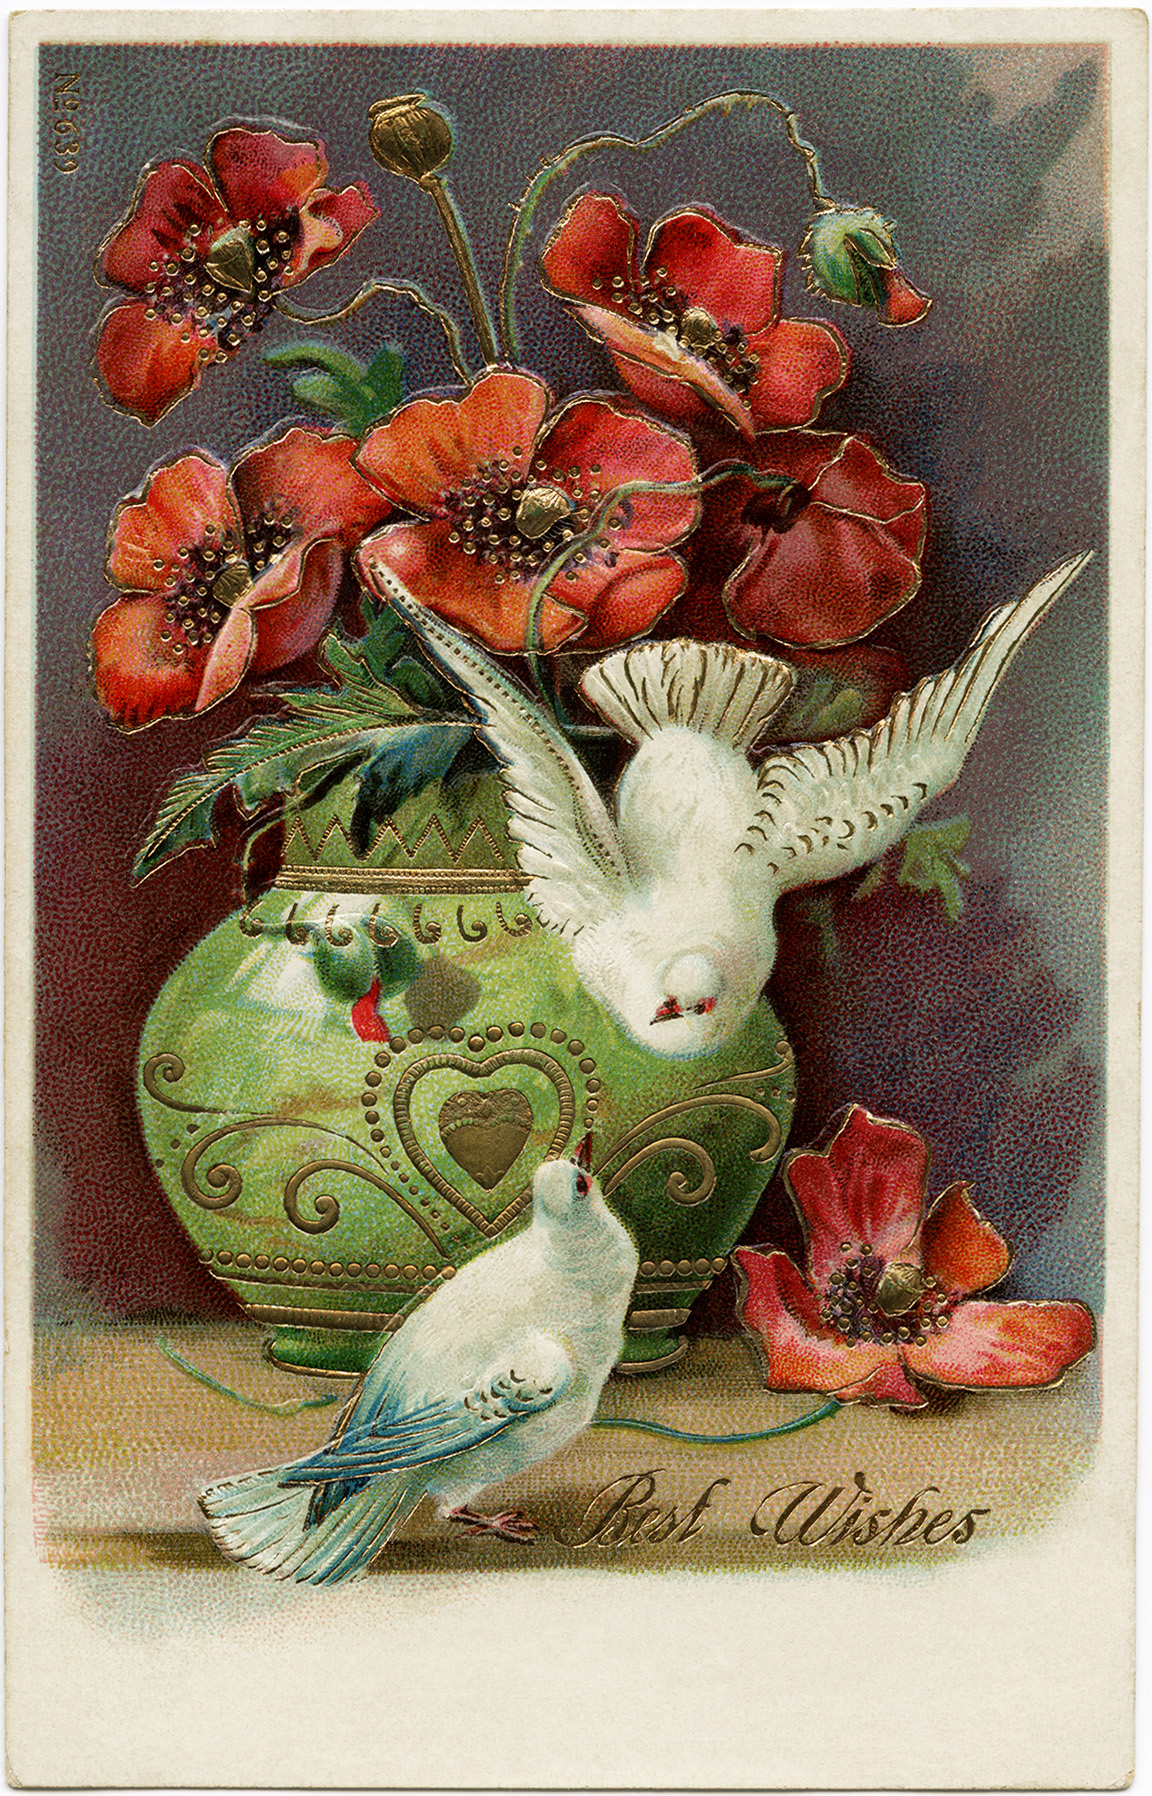 vintage postcard best wishes, poppies and birds clip art, printable postcard graphic, old postcard art, flowers doves vintage image